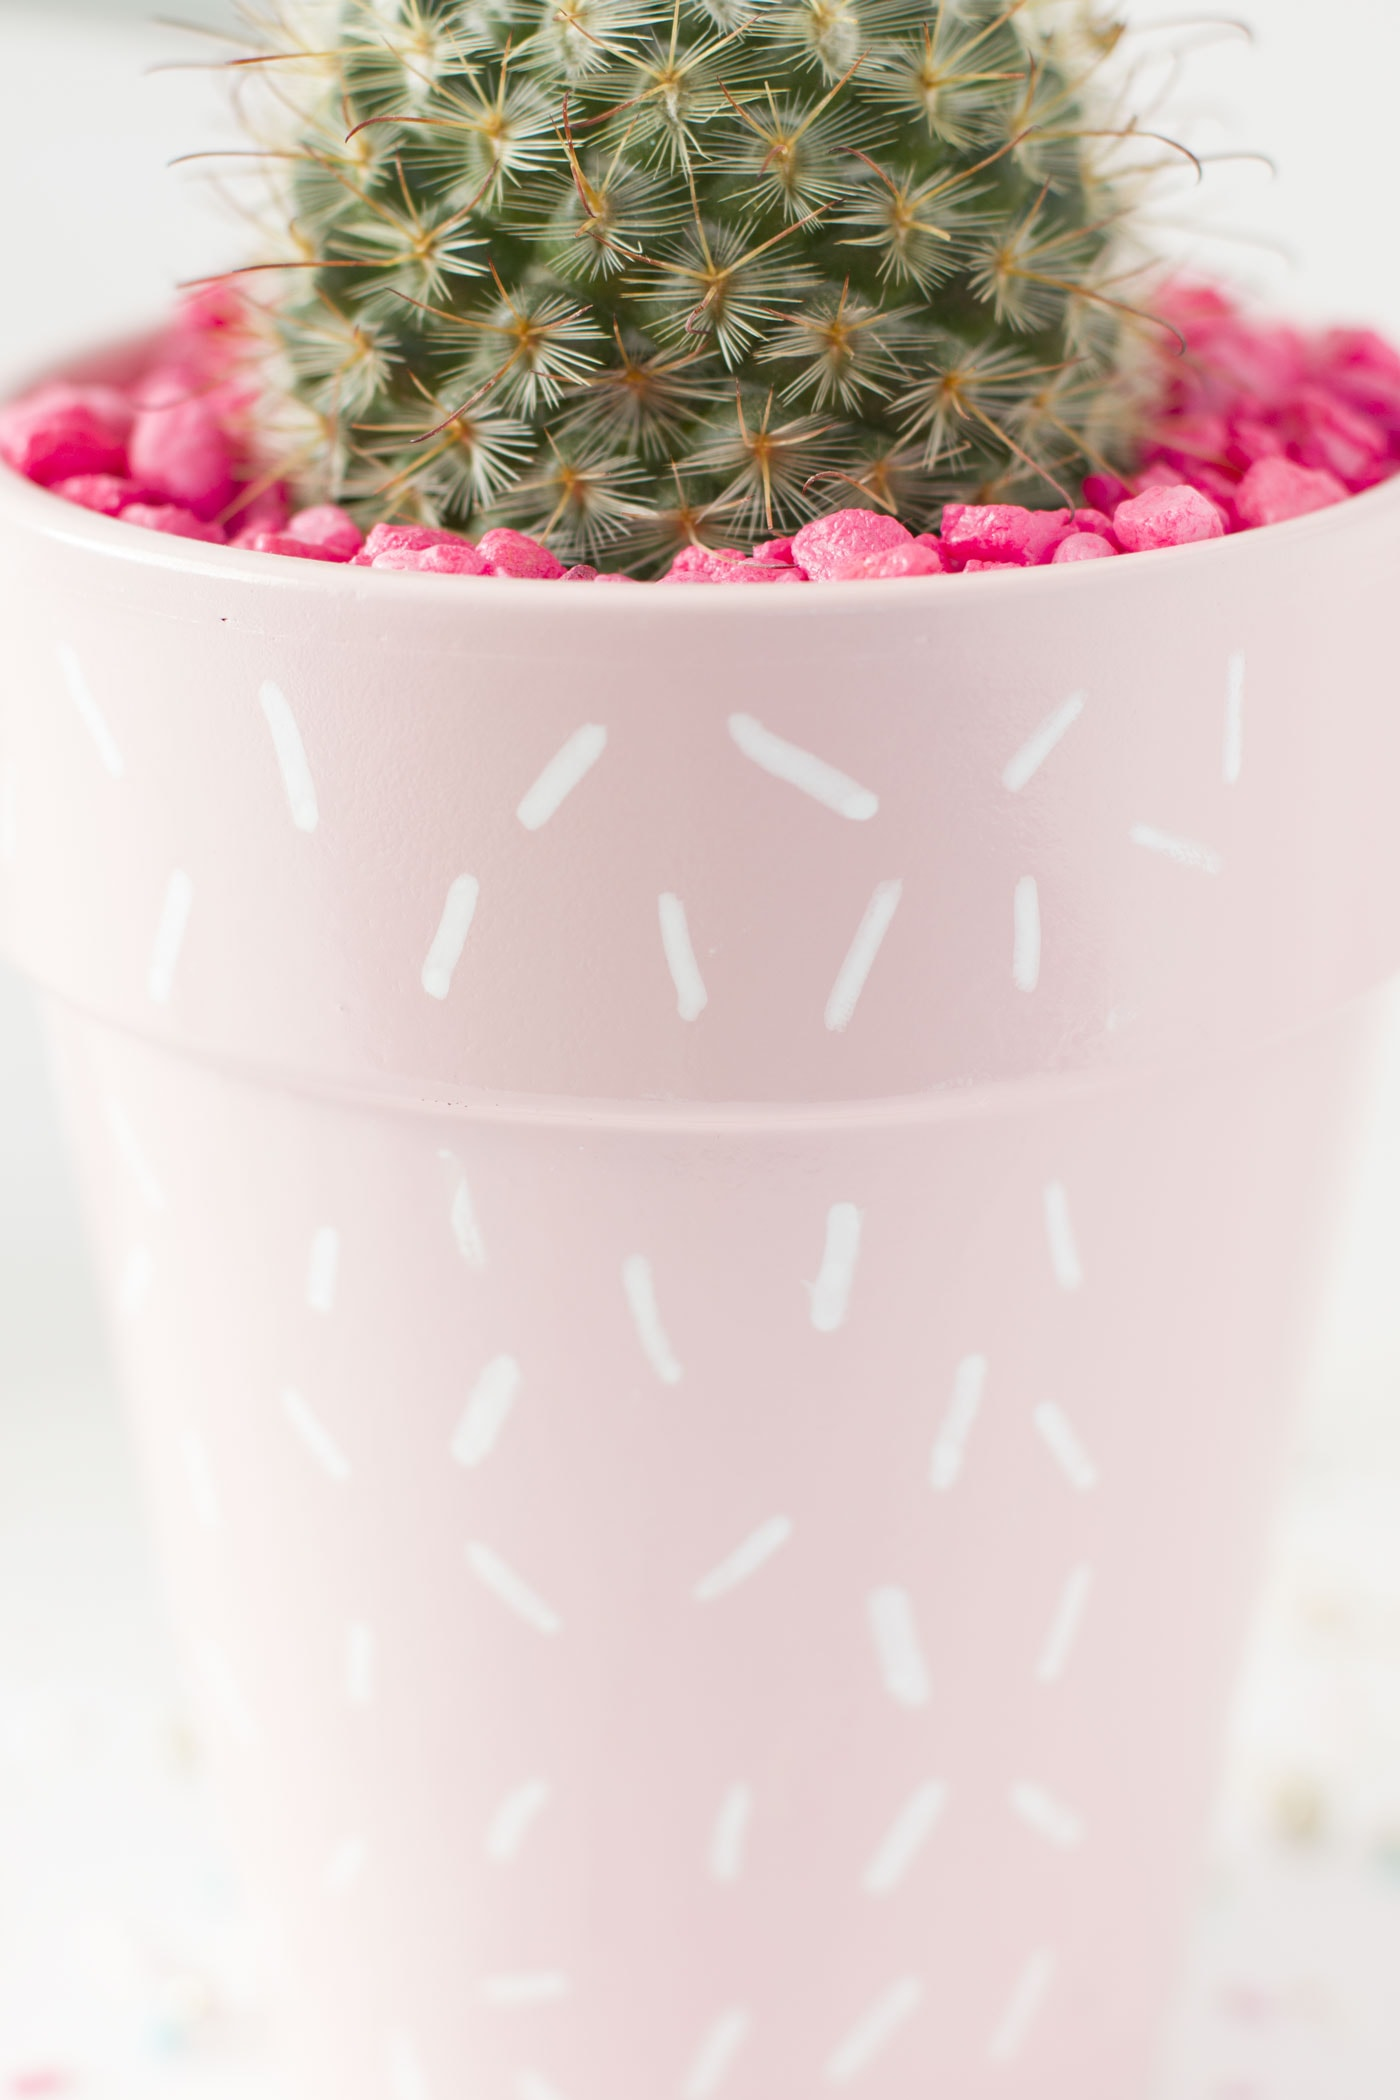 cactus-planter-diy-sprinkle-pink-chic-cute